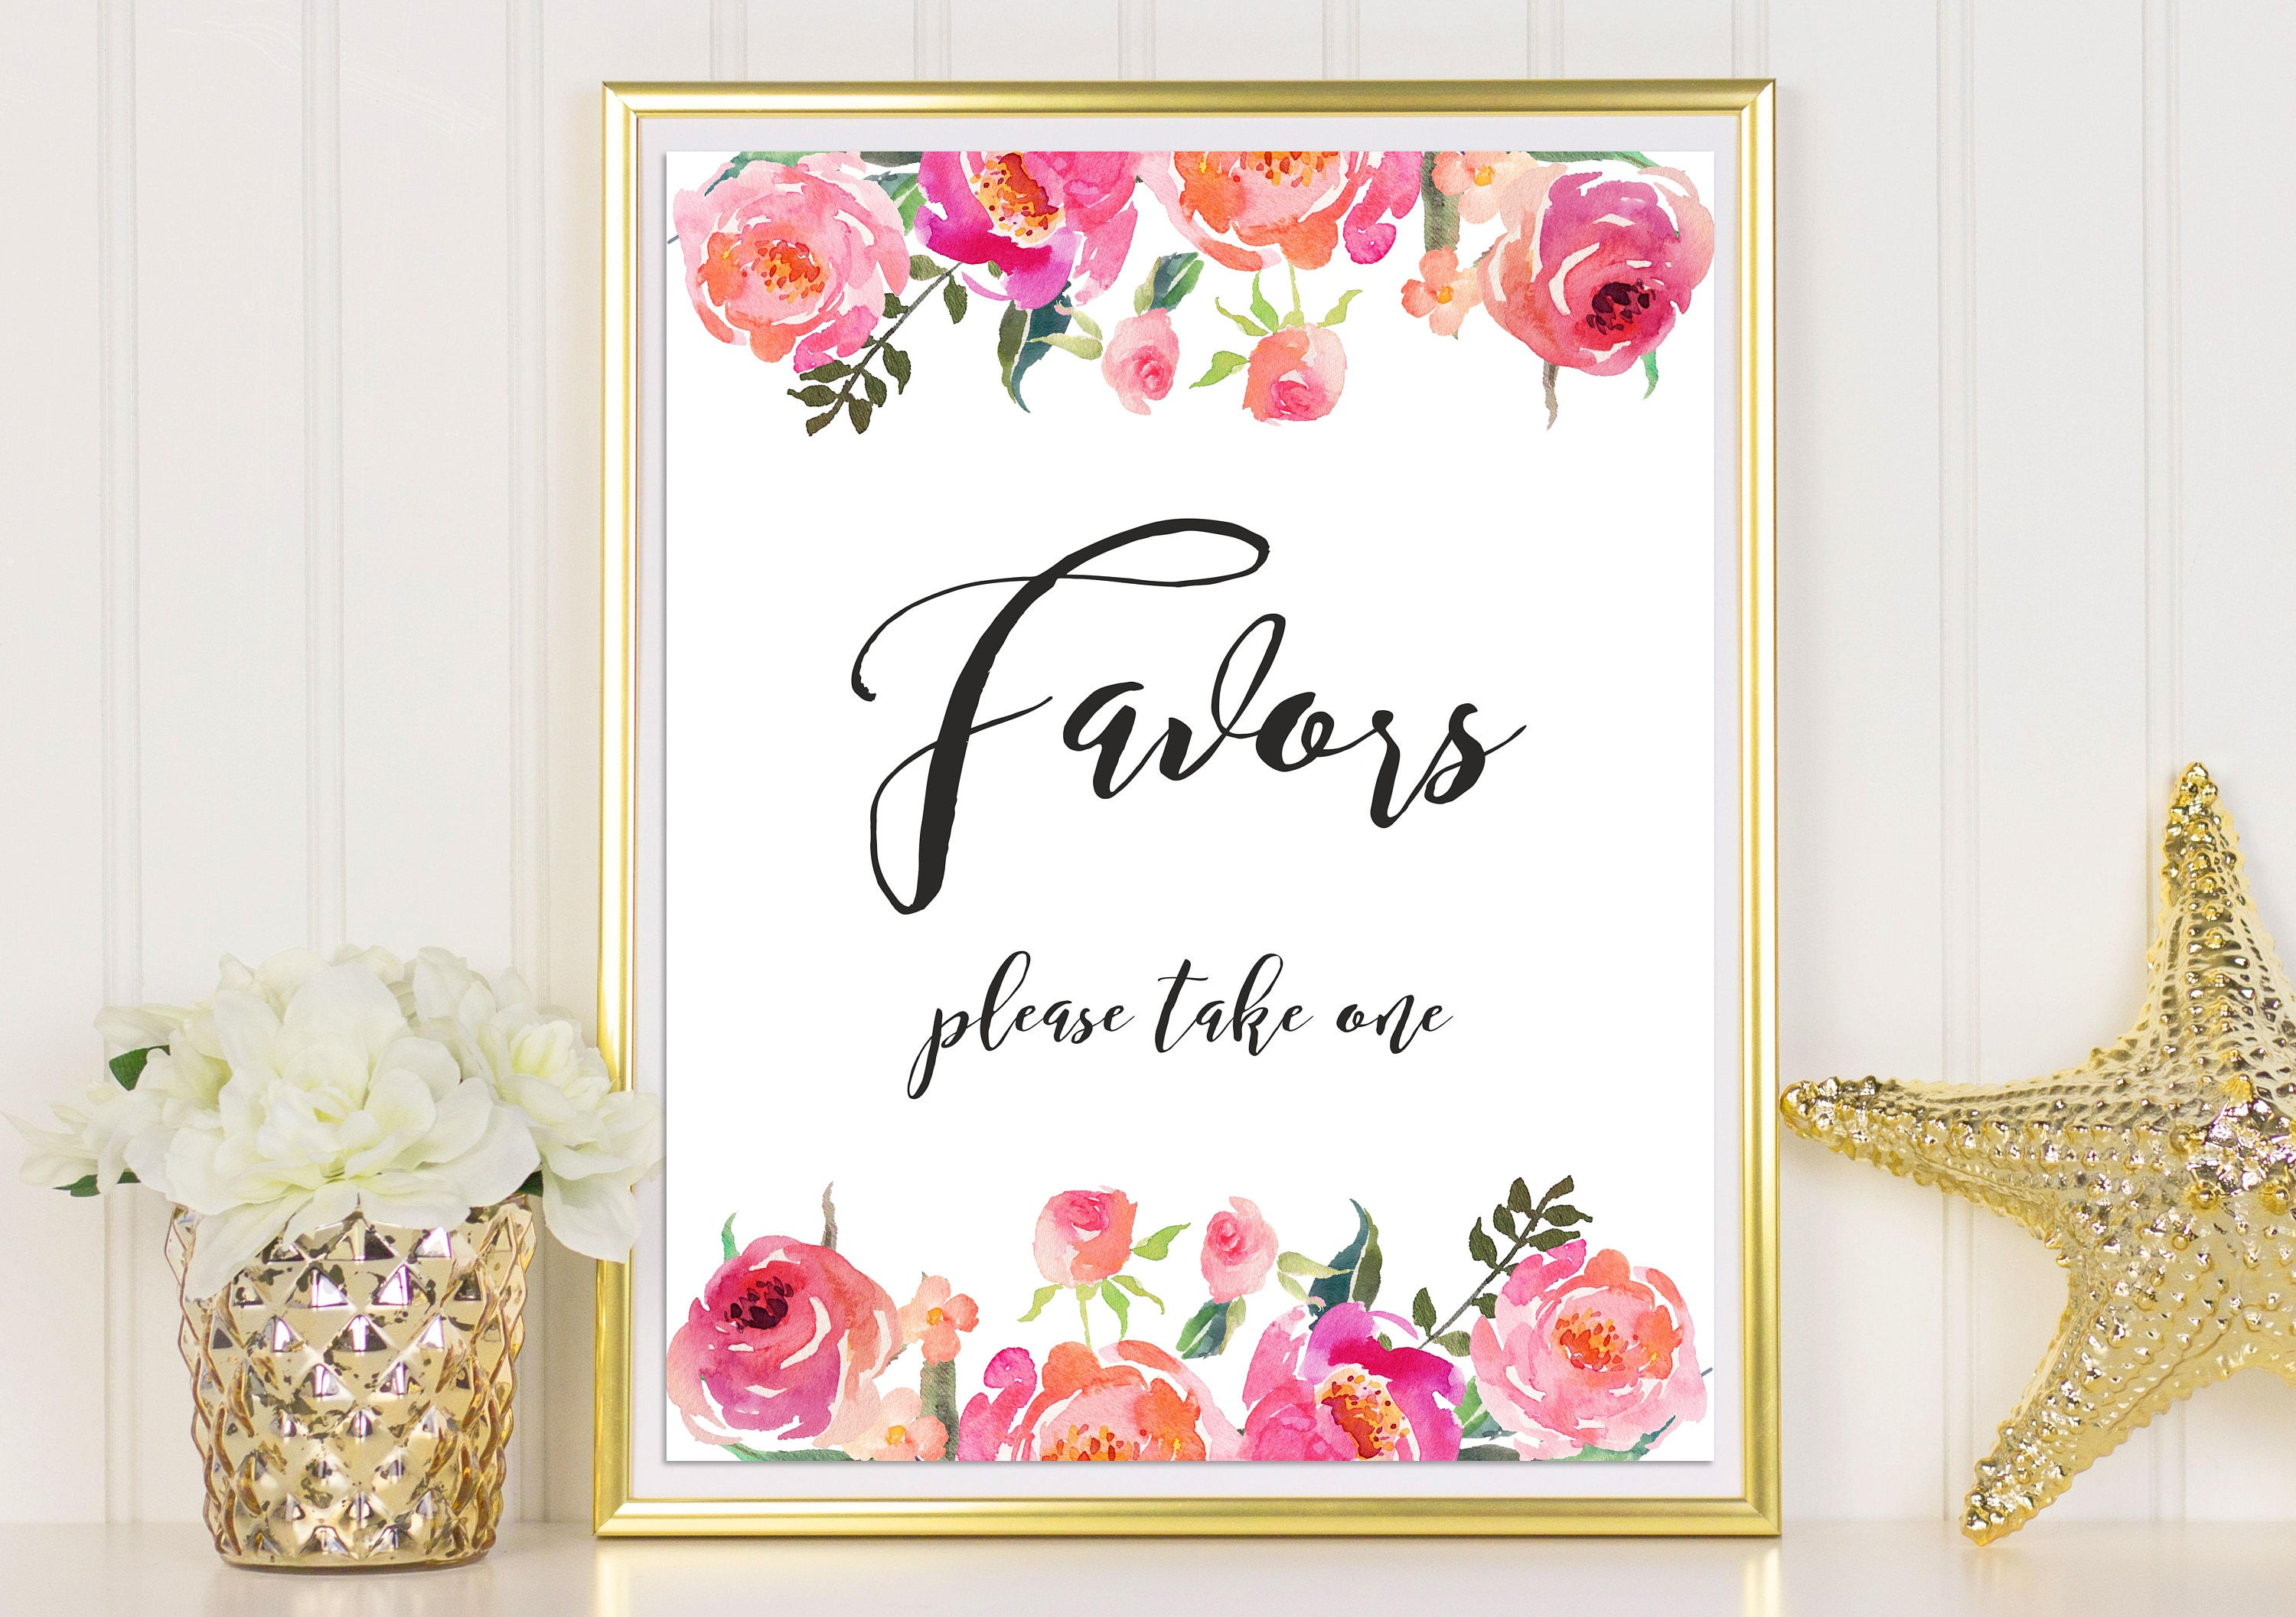 Wedding Favor Sign Party Favors Sign Please Take One Favor